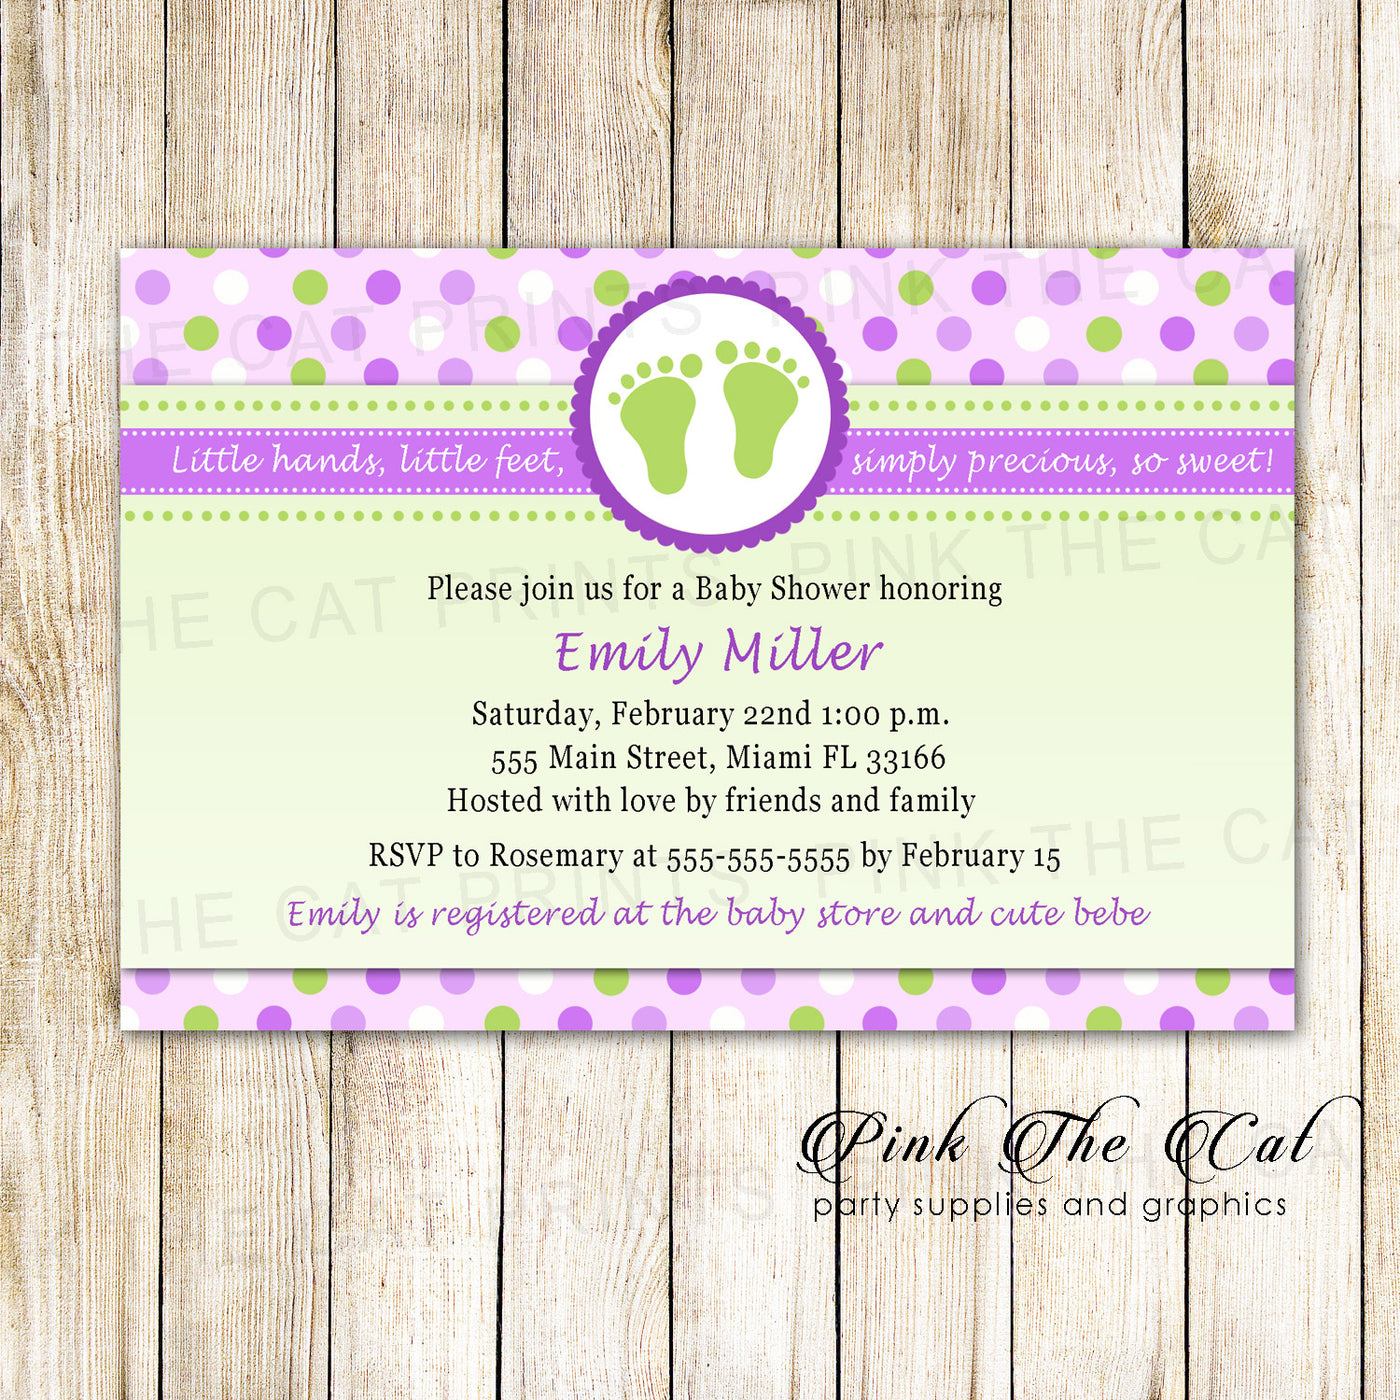 photograph about Baby Shower Invites Printable identify Lovable Ft Crimson Environmentally friendly Little one Shower Invitation